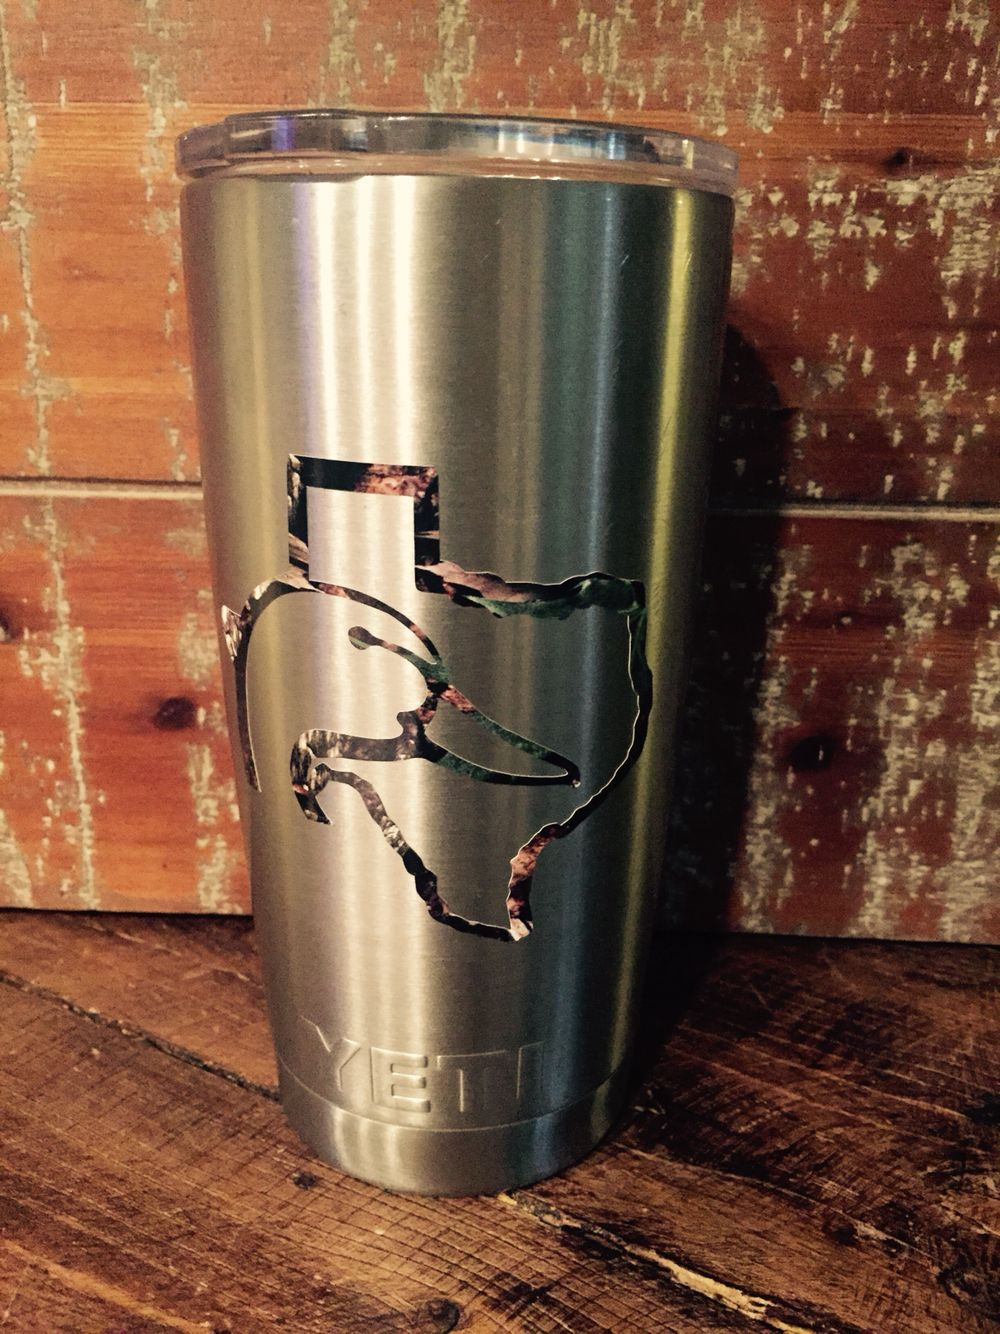 Yeti Cup Decal Camo My Silhouette Projects Pinterest Yeti - Custom custom vinyl decals for cups